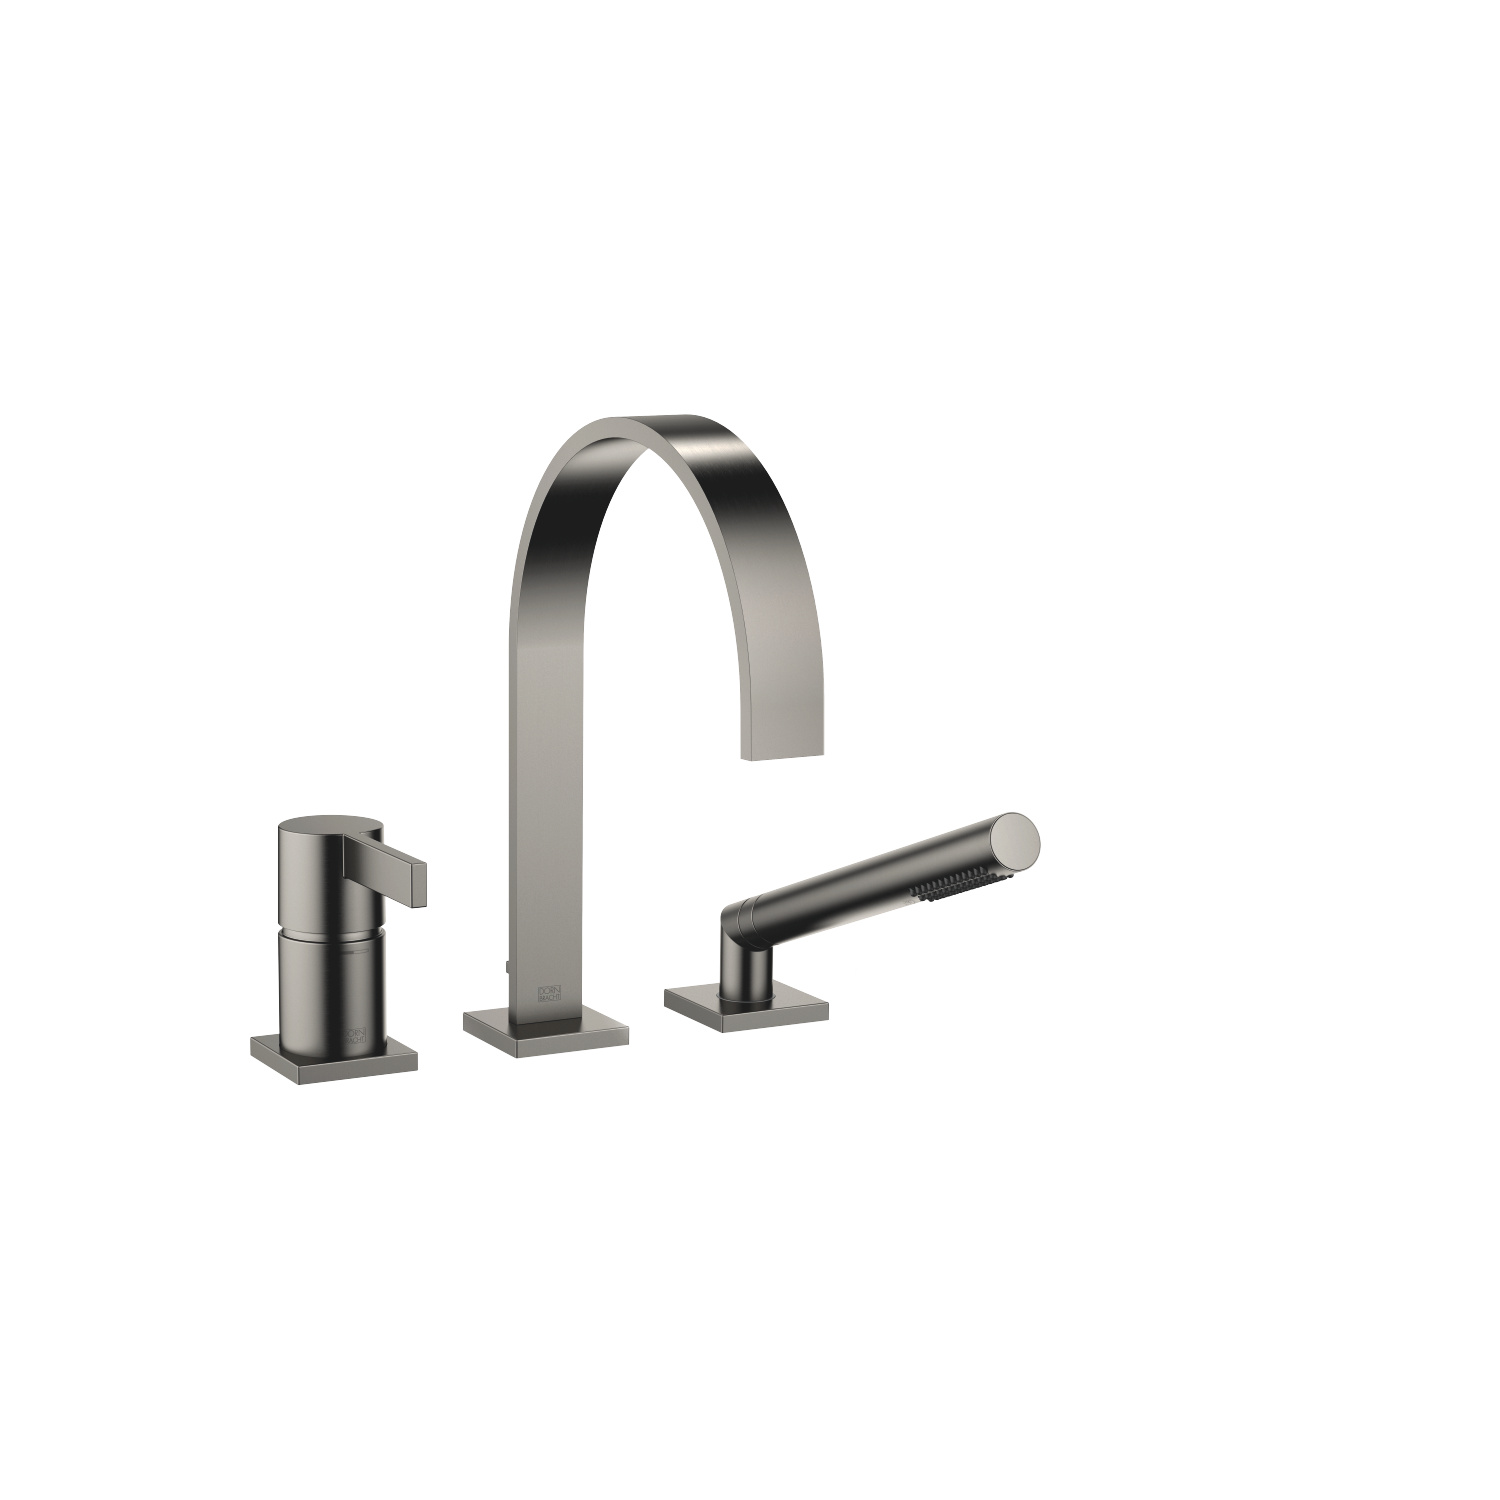 Three-hole single-lever bath mixer for bath rim or tile edge installation - Dark Platinum matt